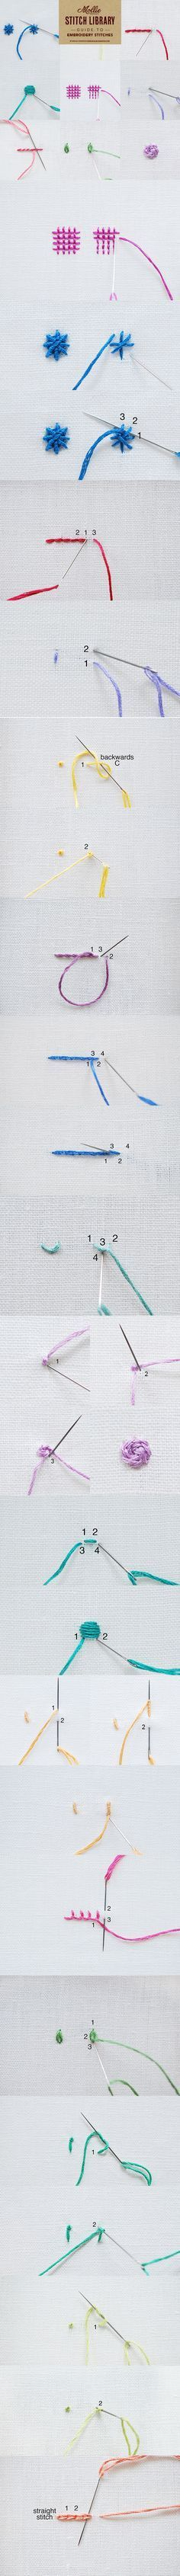 Learn 17 embroidery stitches with our handy guide. Bookmark or Pin this page for future reference or you can download and print it.